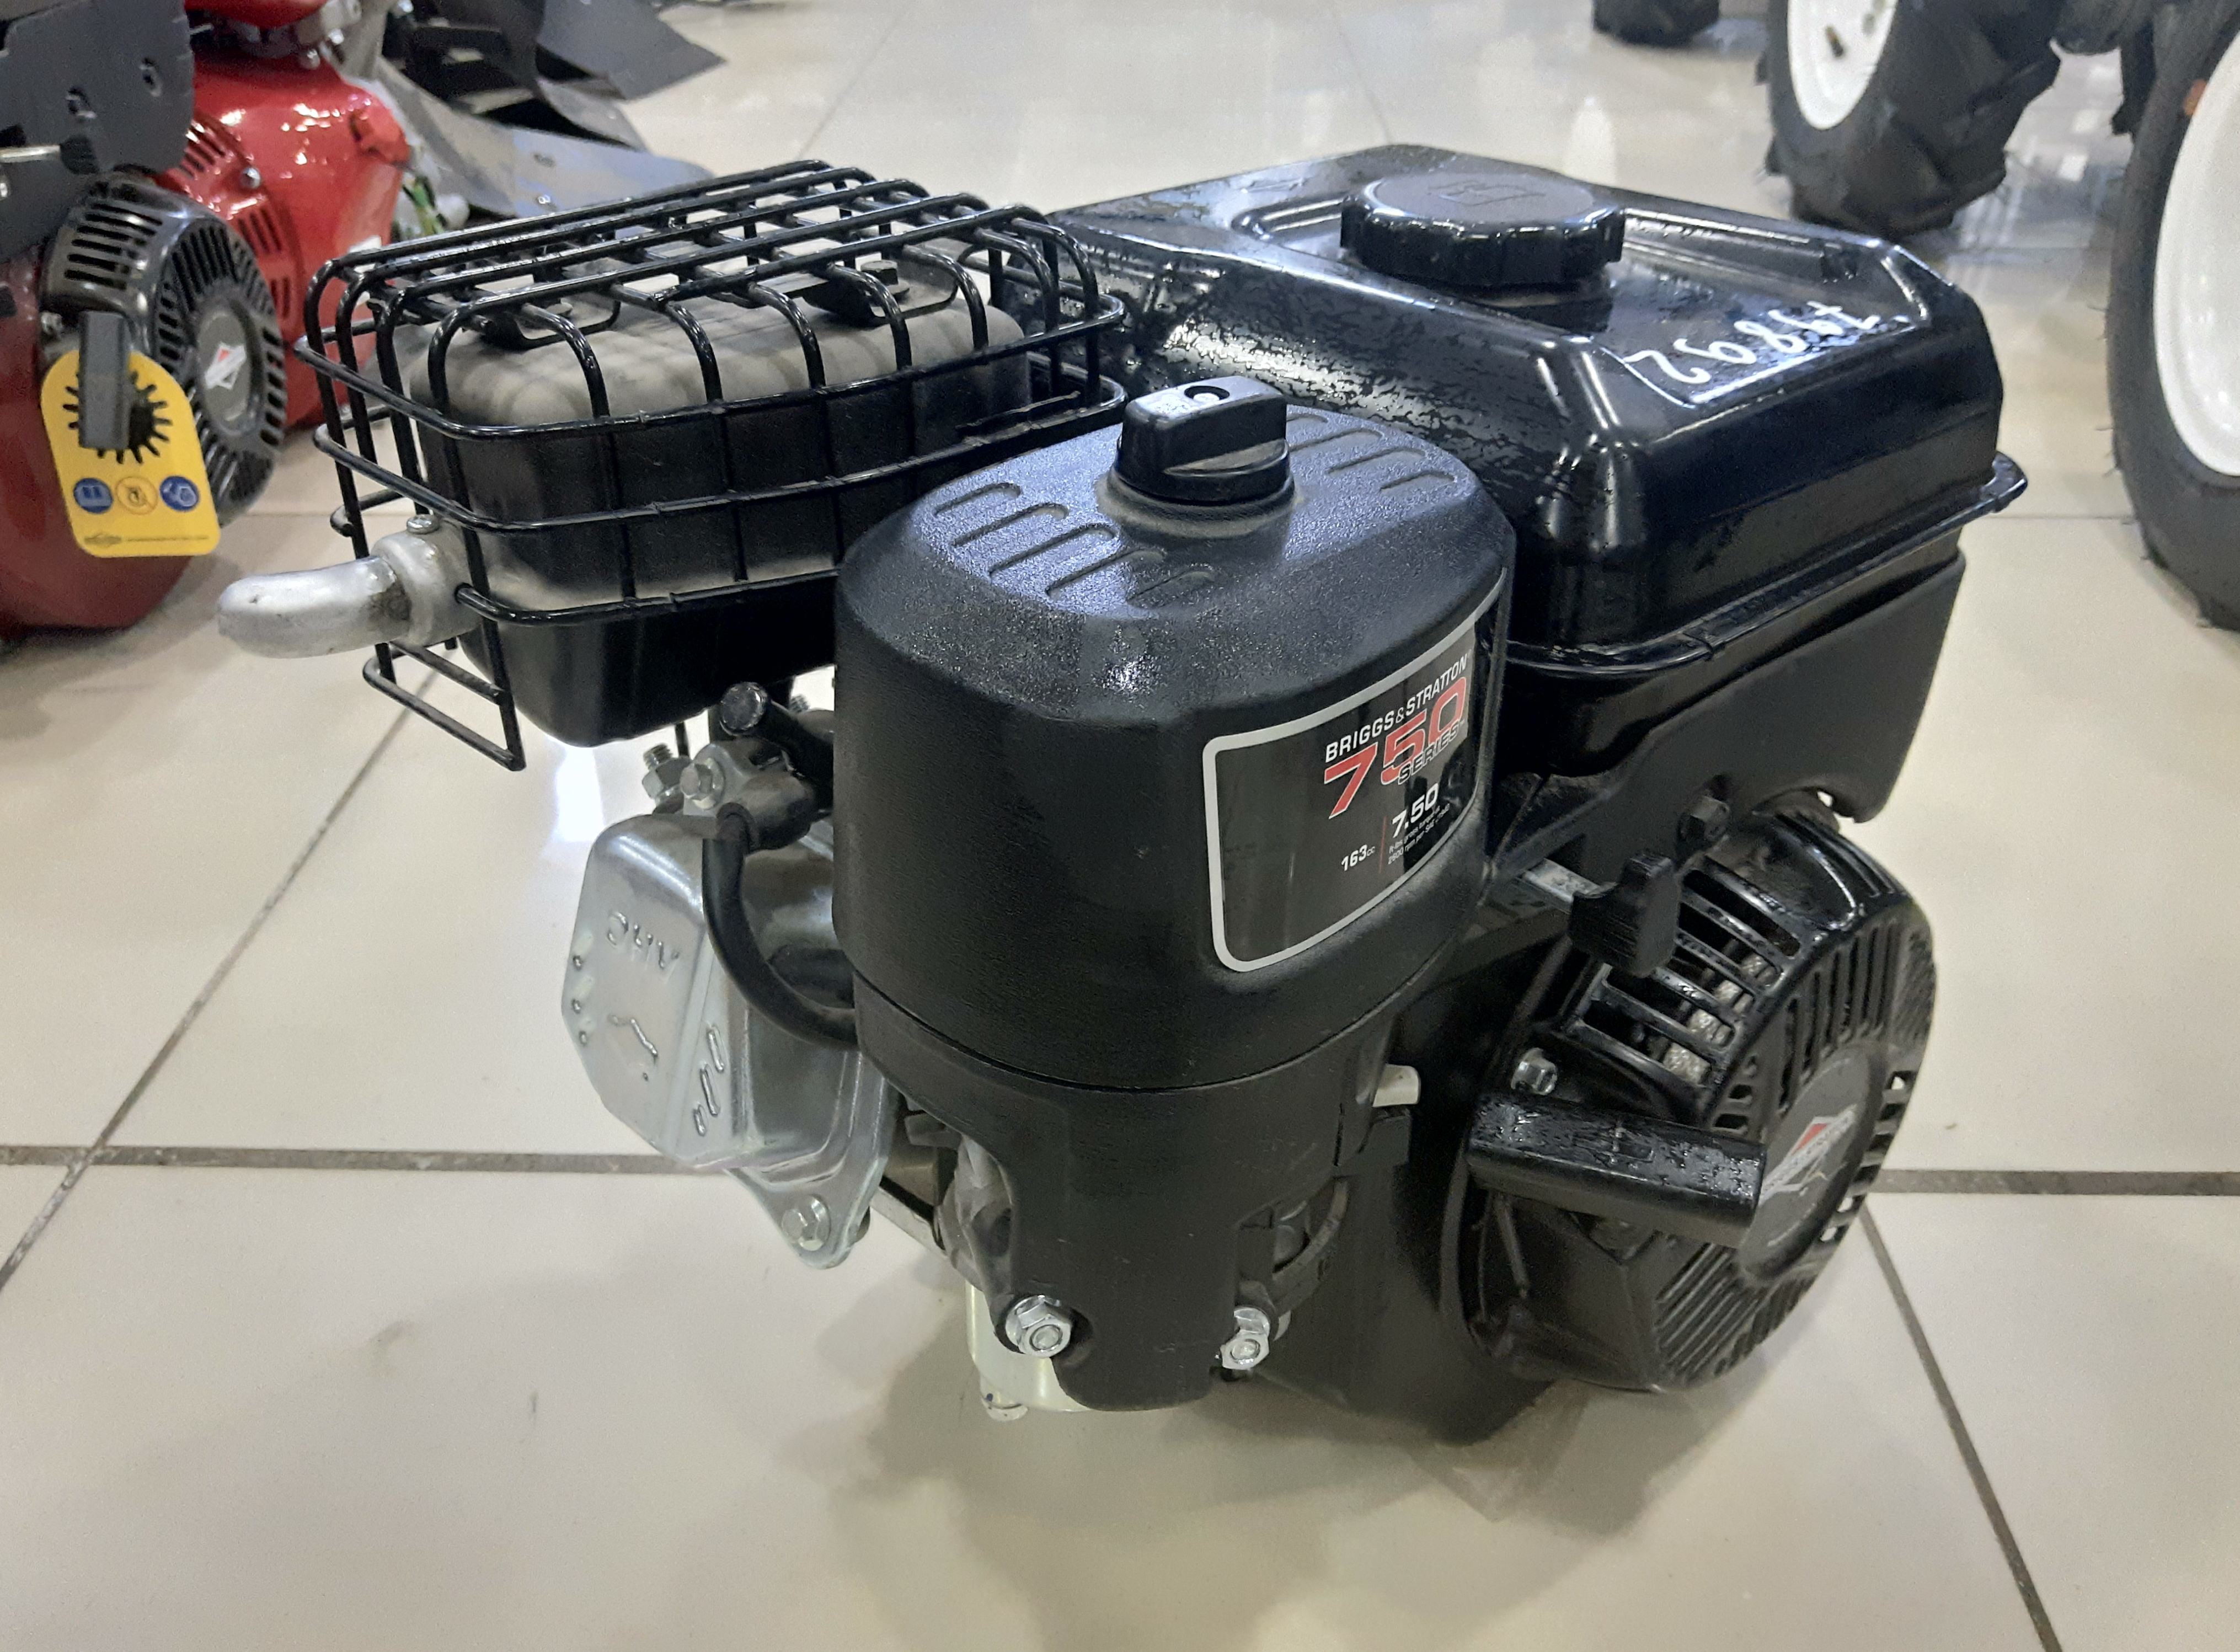 КЗД с двиг. Briggs&Stratton Series